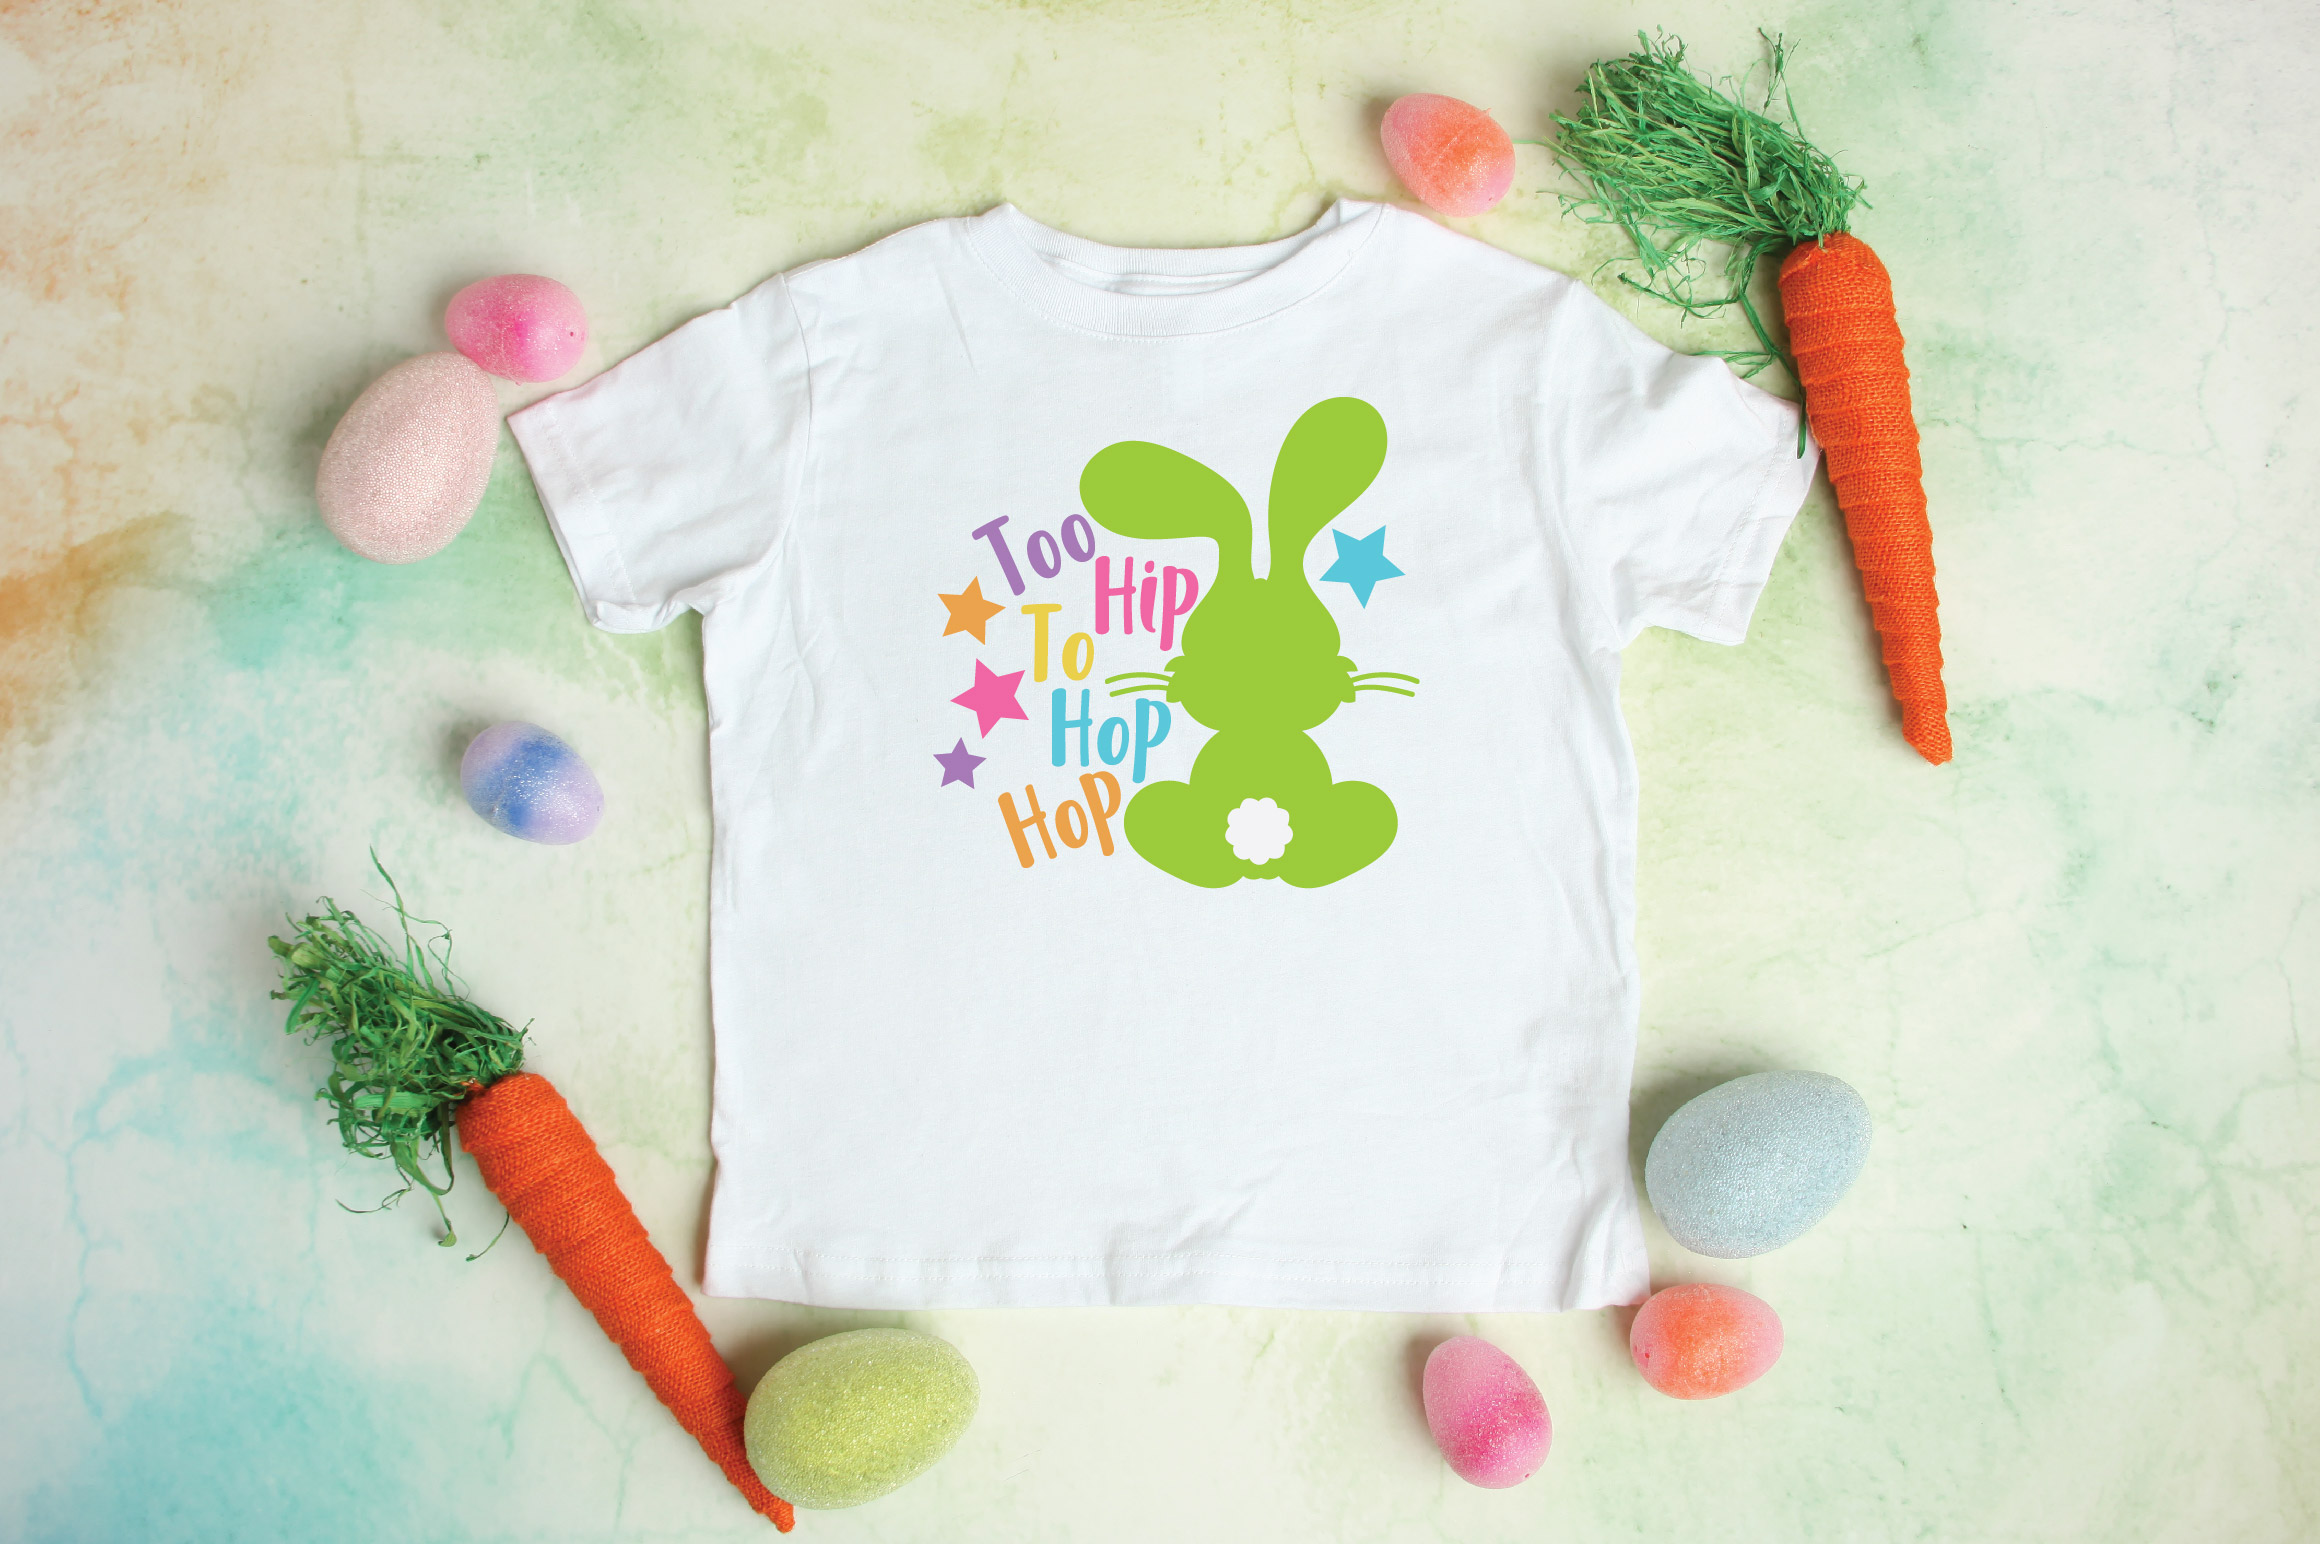 Easter SVG Bundle with 25 SVG Cut Files DXF EPS PNG AI JPG example image 6